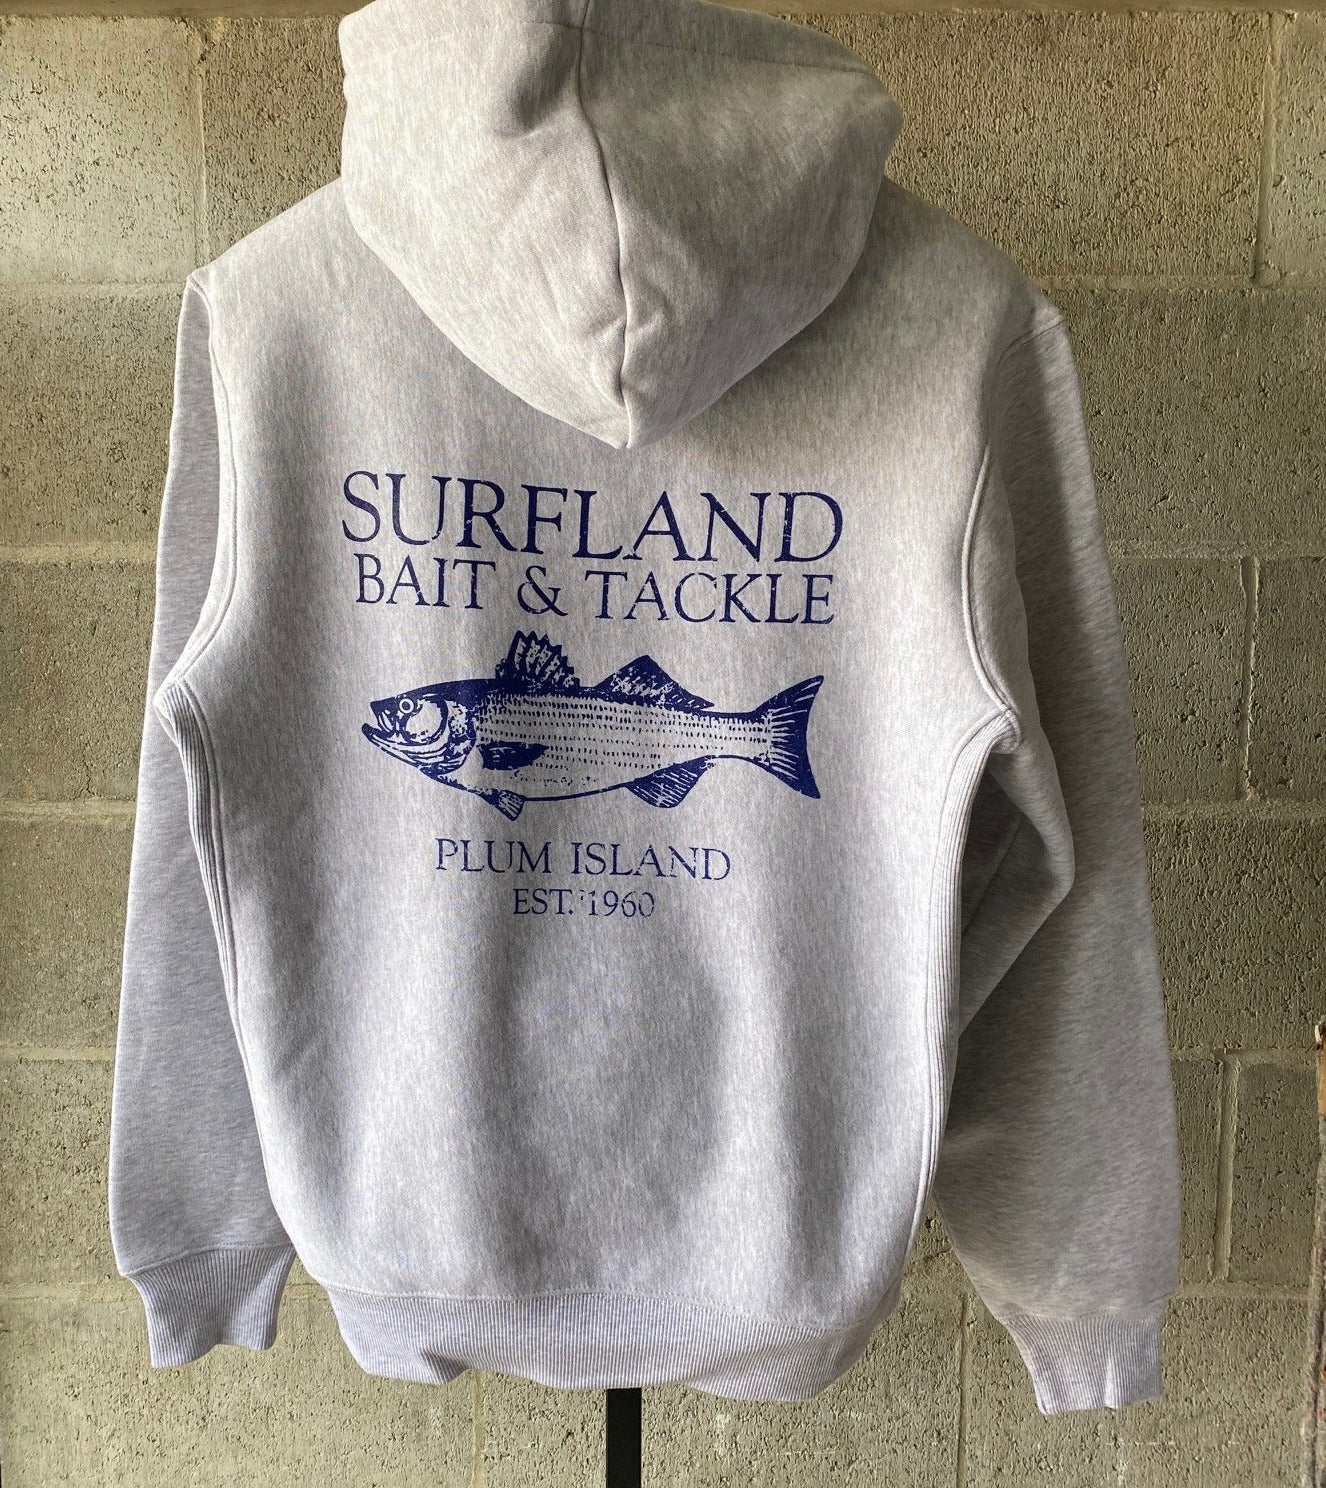 Surfland Gear - Original HWY Surfland Full-Zip Hoody